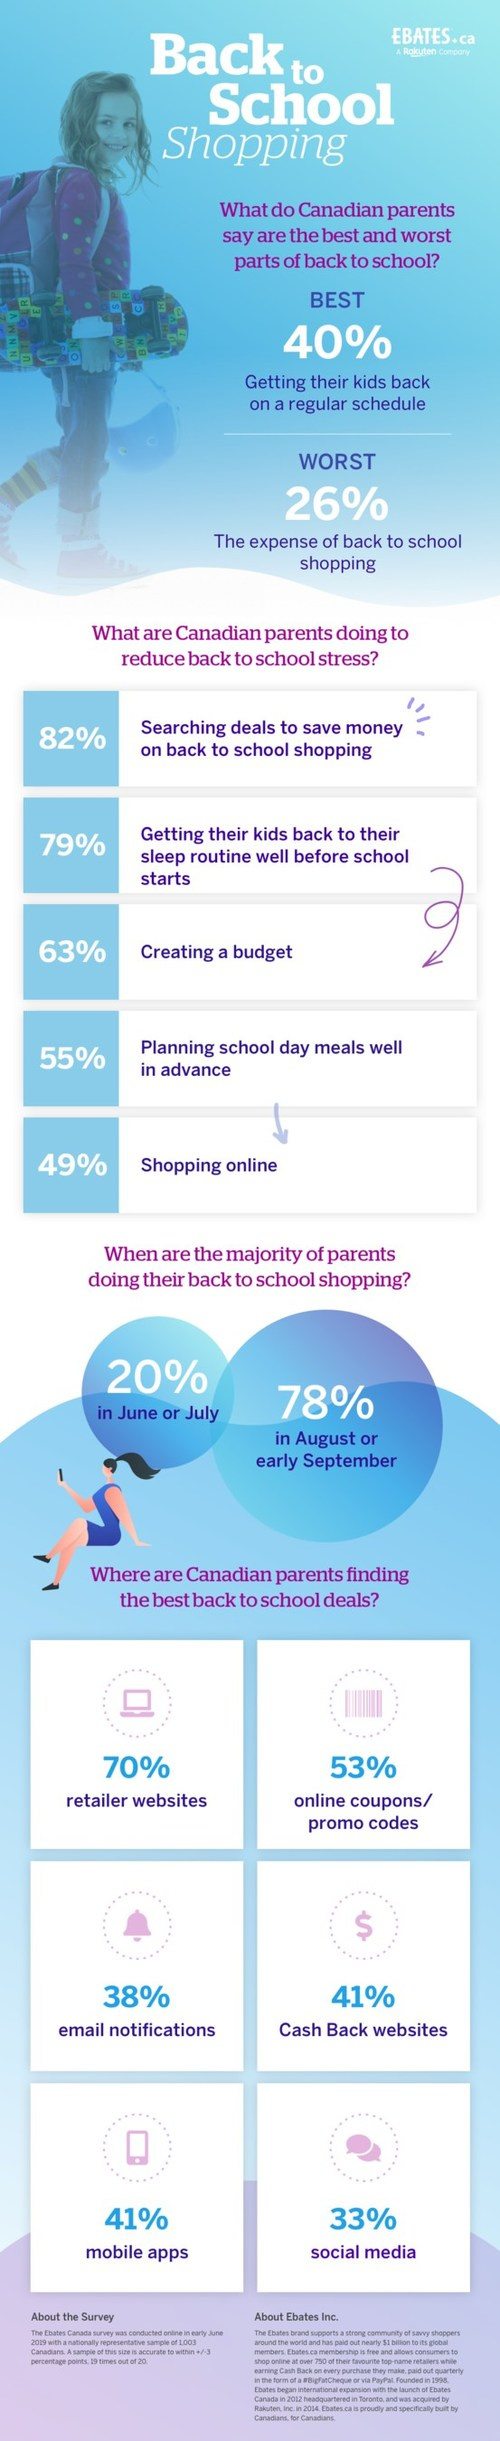 Key tips for Canadians to save money and lessen the stress of back-to-school shopping (CNW Group/Ebates Canada)